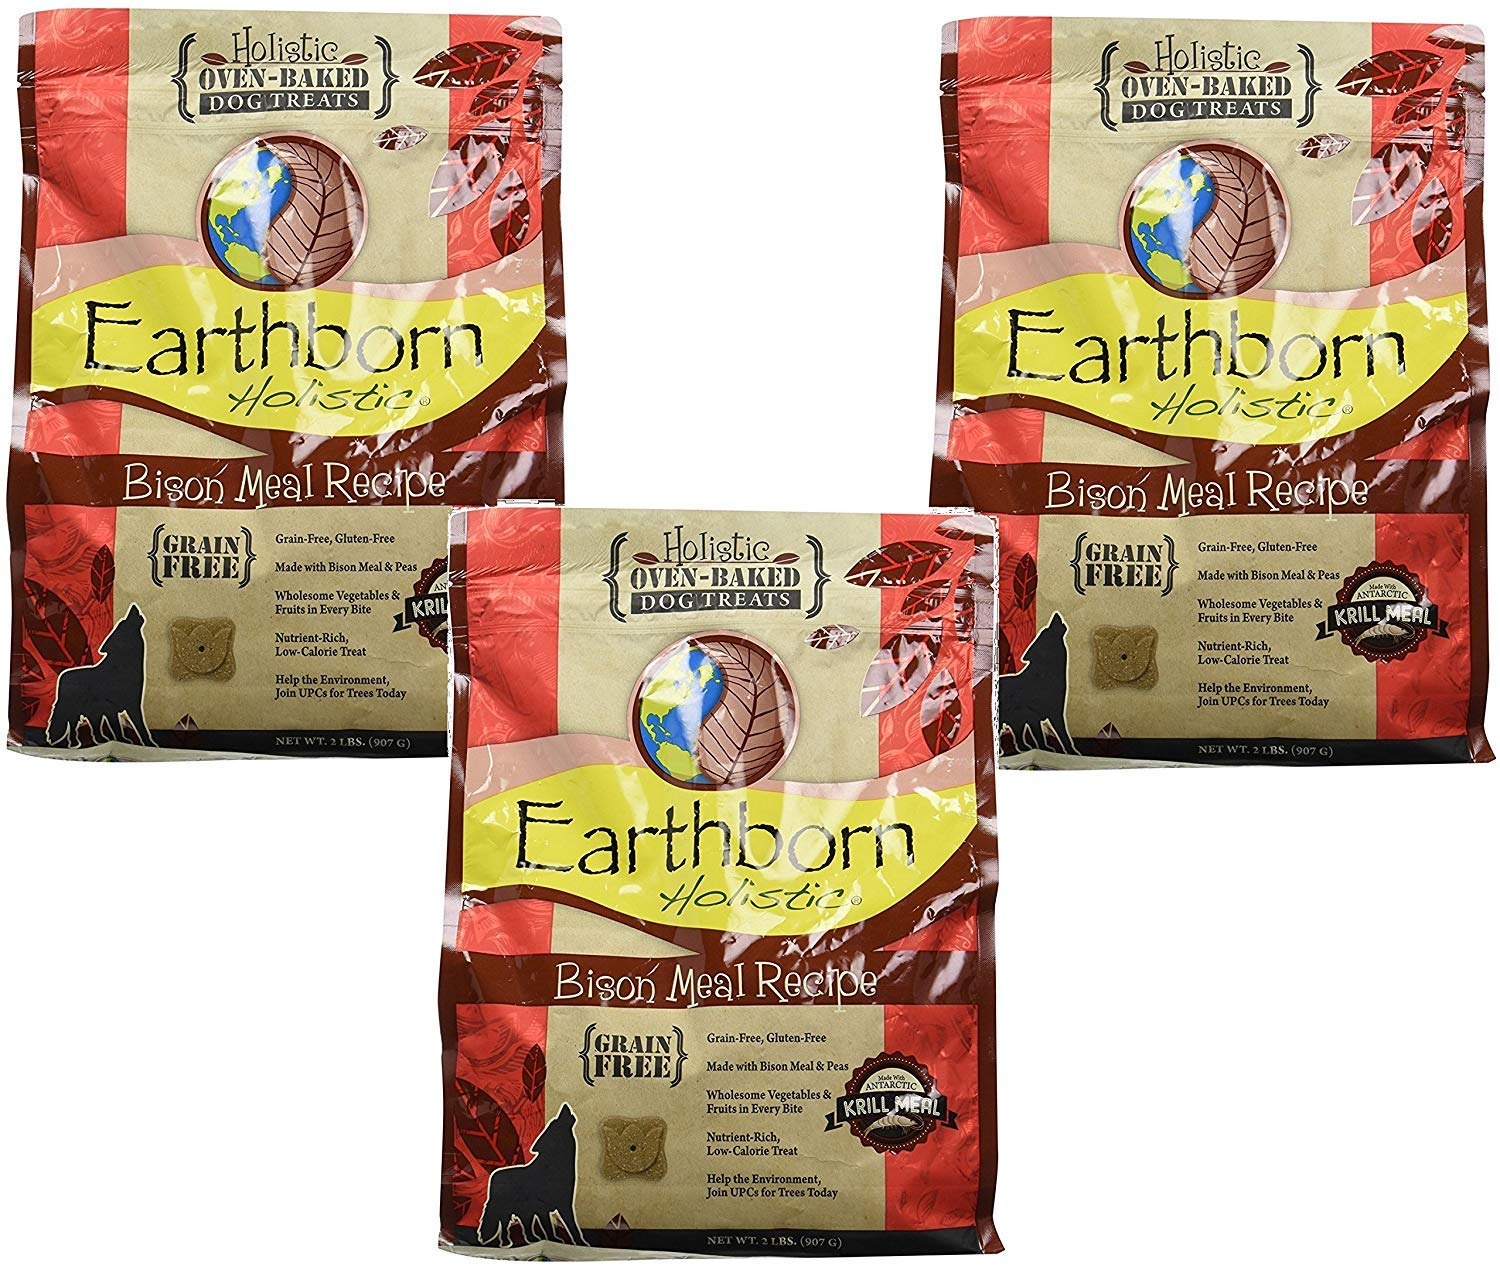 Earthborn Holistic Bison Meal Recipe Holistic Oven-Baked Dog Treats (3 Pack / 2 Pounds Per Pack)